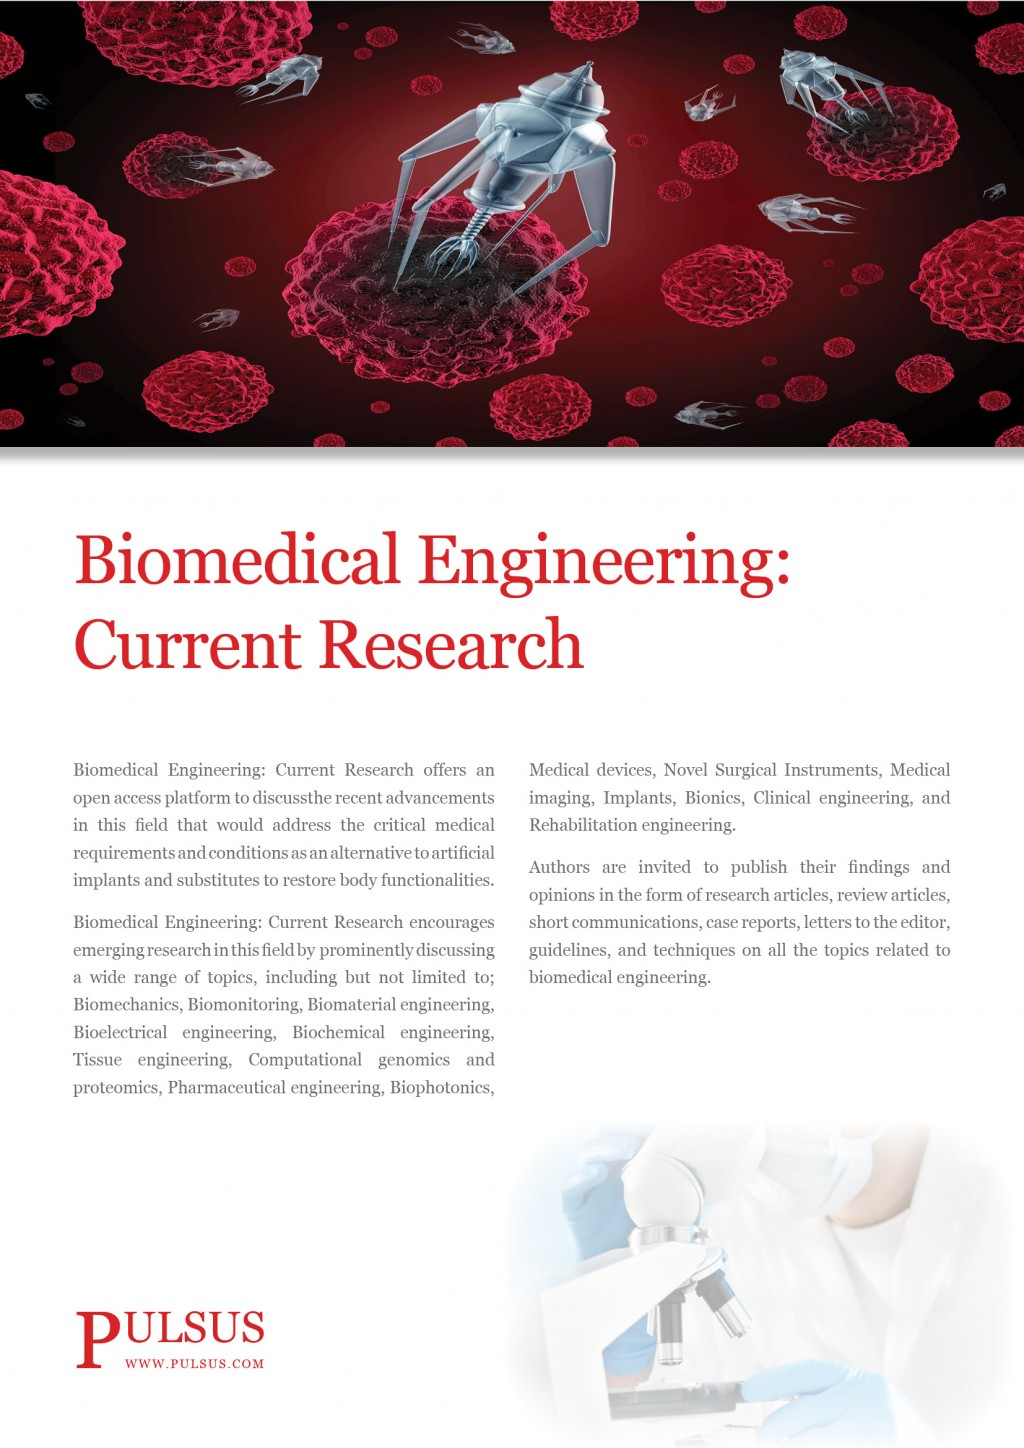 017 Medical Field Topics For Researchs Biomedical Engineering Current Flyer Imposing Research Papers Large